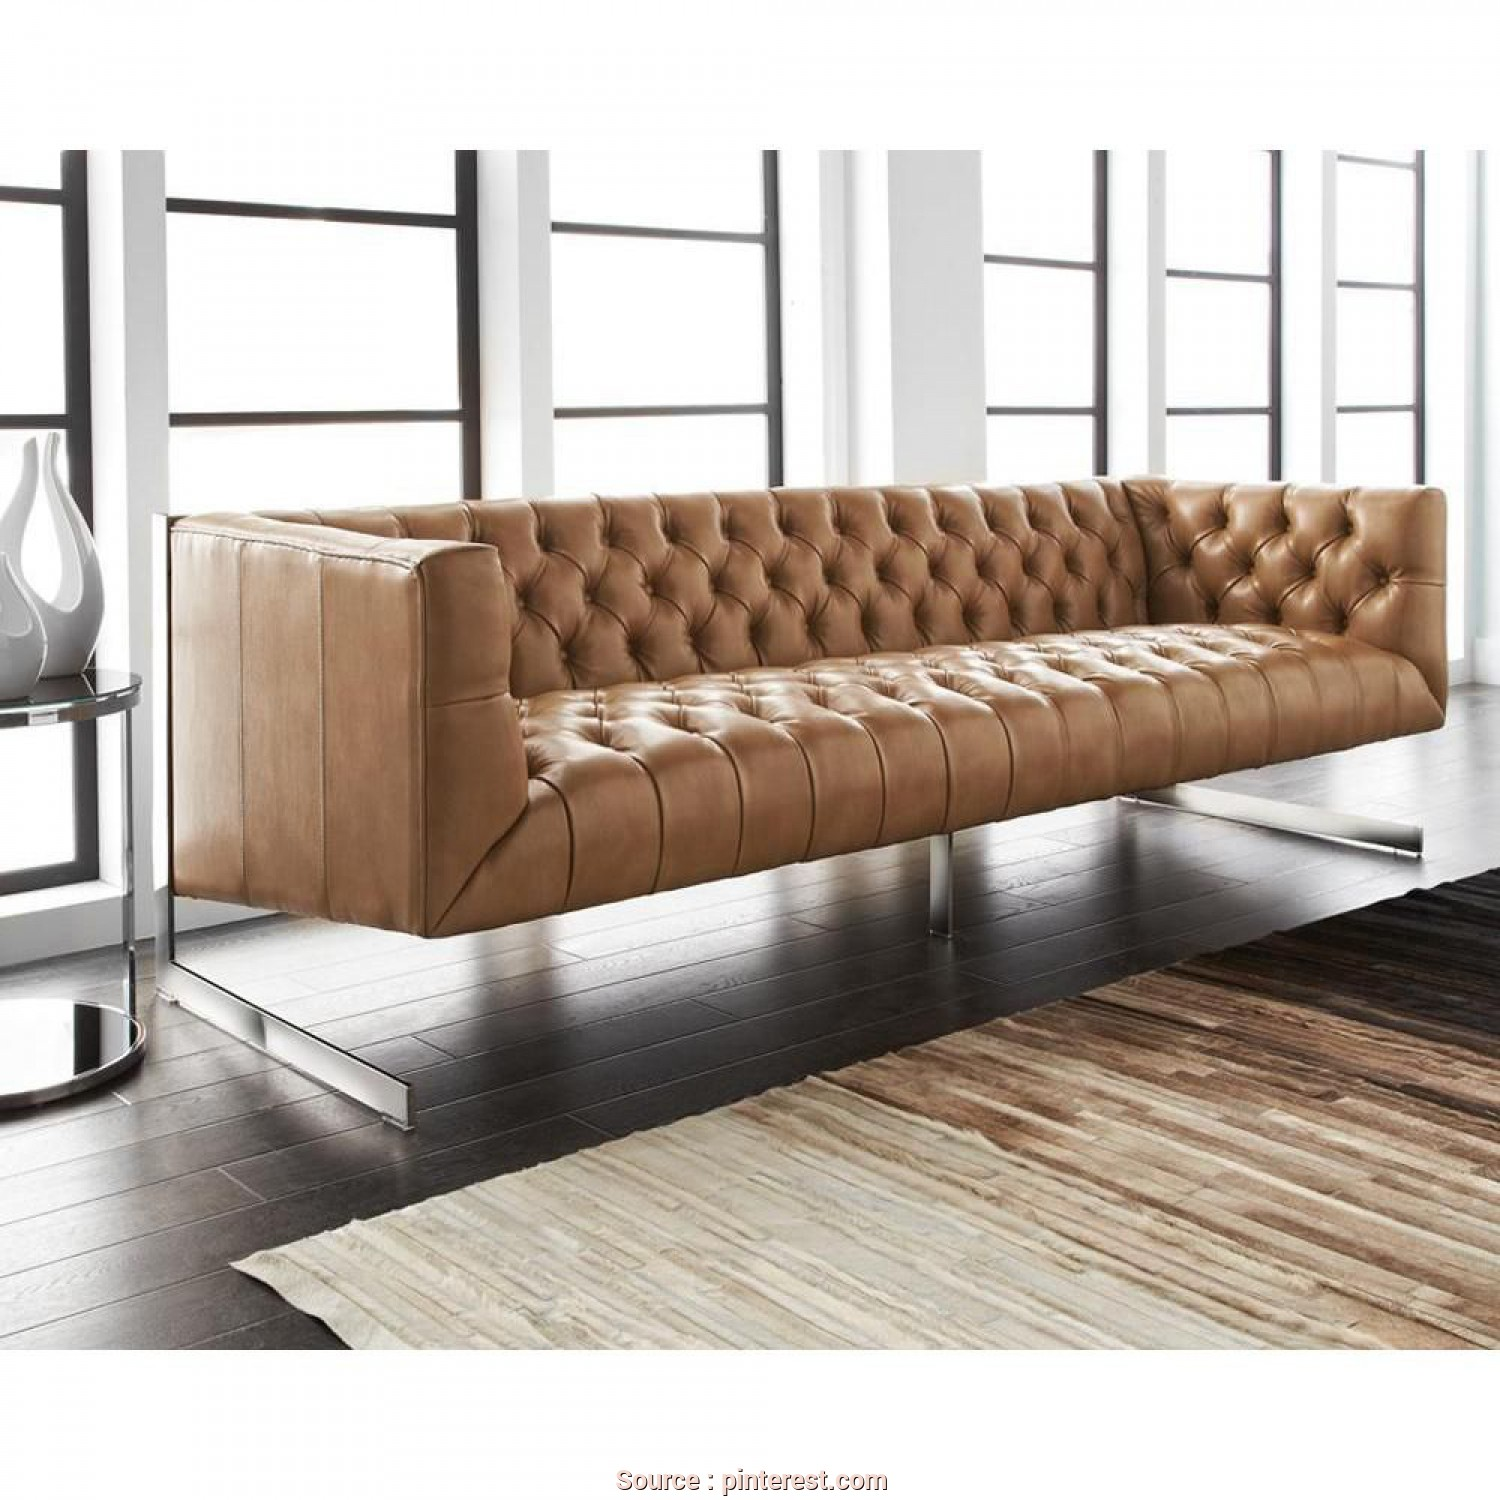 Divano Chester Viper, Minimalista Viper Sofa, Peanut Leather, Living In Lux, Sofa, Leather Sofa